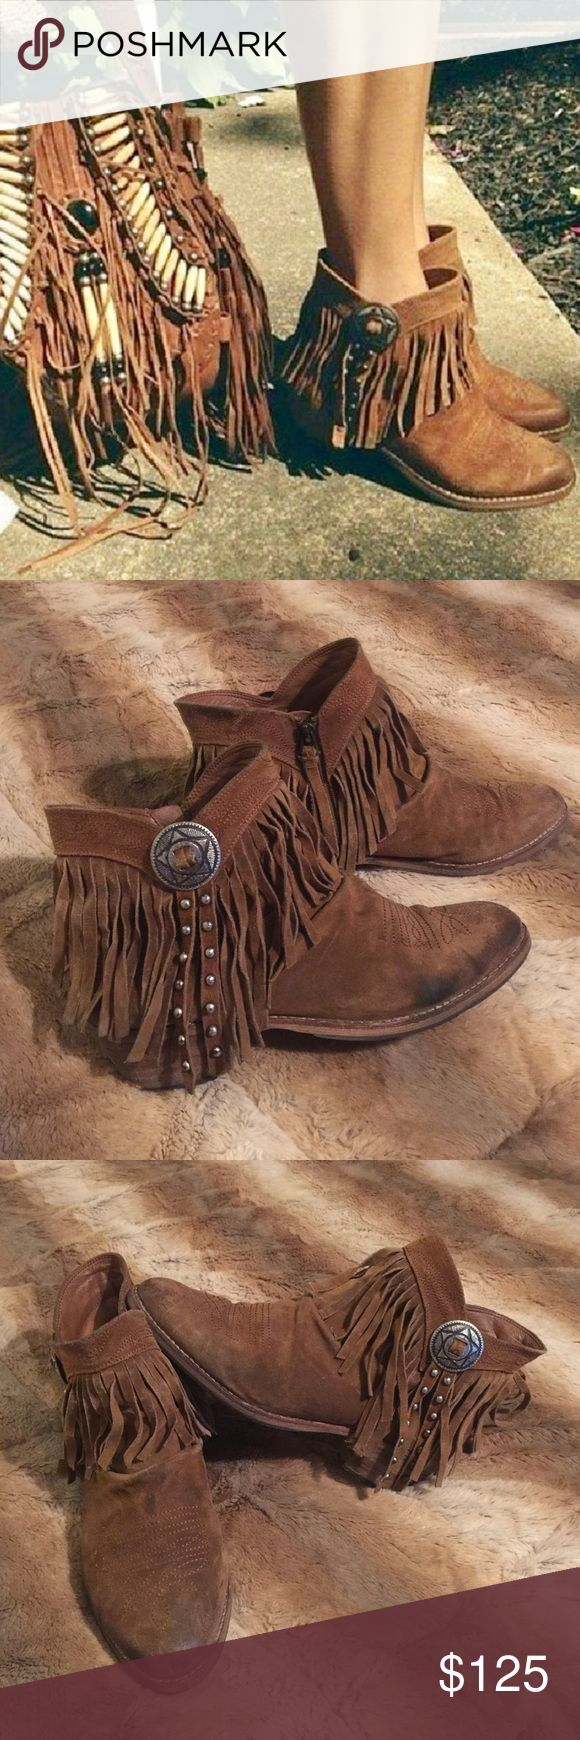 SAM EDELMAN Sidney Fringe Ankle Boots Booties 10 Sam Edelman 'Sidney' distressed whiskey brown sueded leather boots. Top lined with fringe, bronze star conchos and bronze studs on the tassels have been hand painted silver by me. Wooden stacked heels need to be replaced soon. Size 10. These boots are very sought after because they literally go with everything! No trades please  Sam Edelman Shoes Ankle Boots & Booties